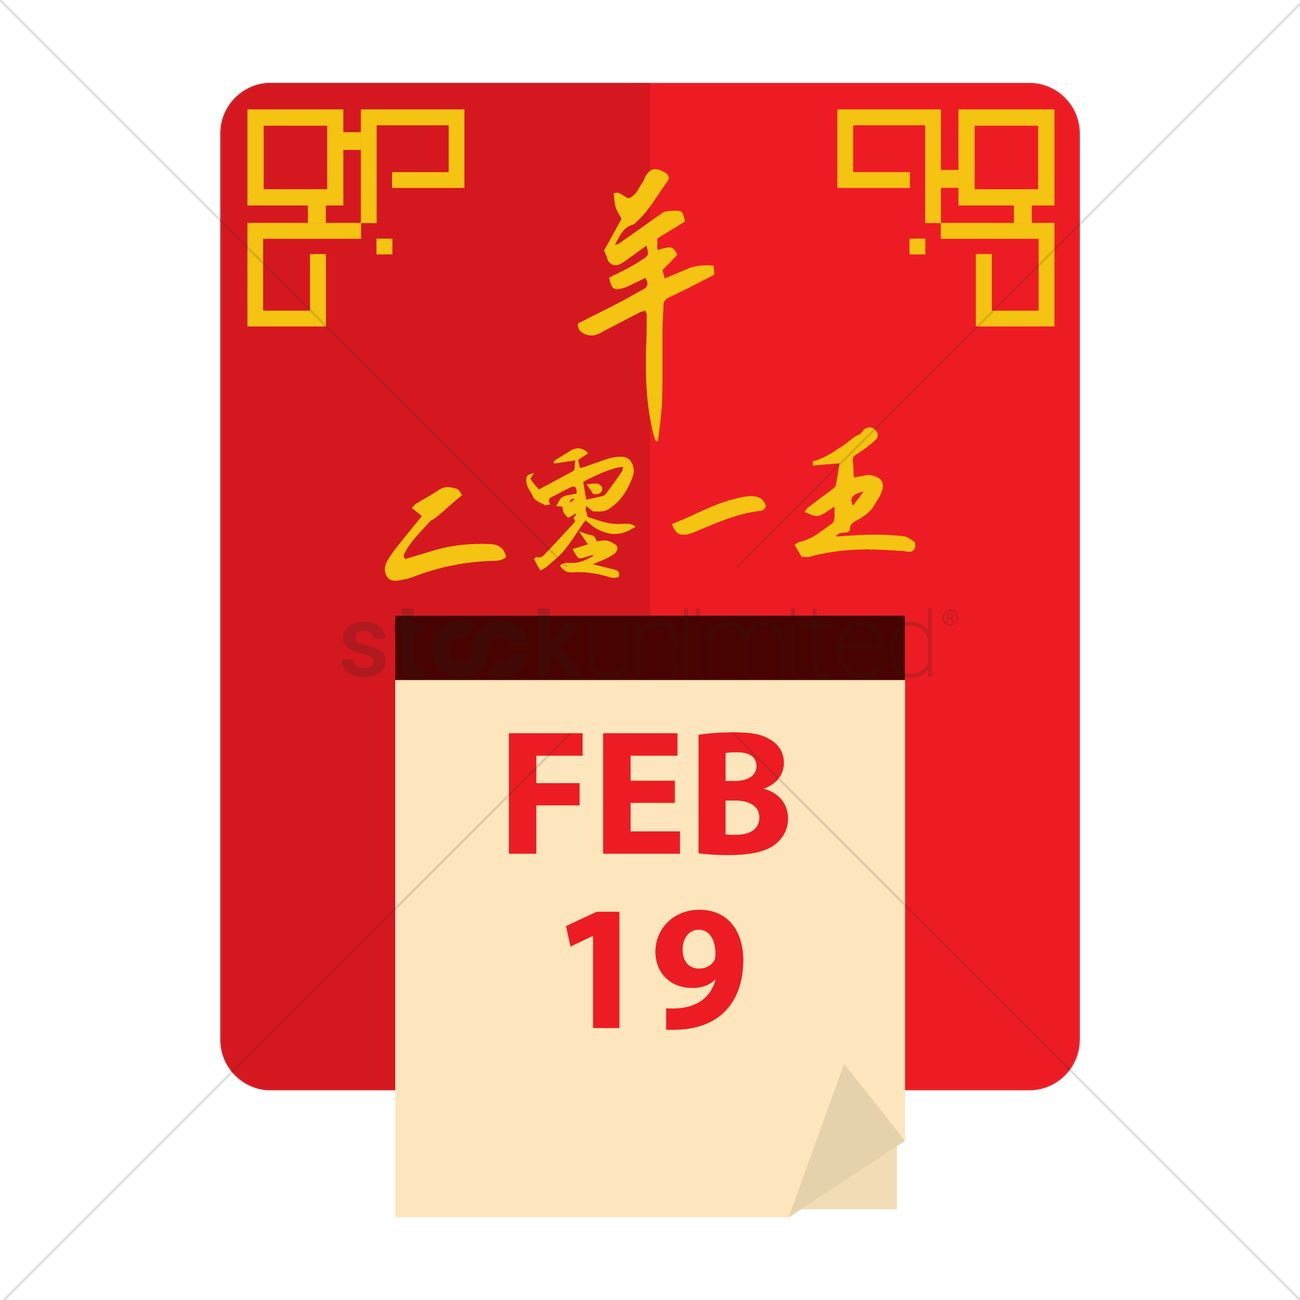 chinese new year date vector graphic - Chinese New Year Date